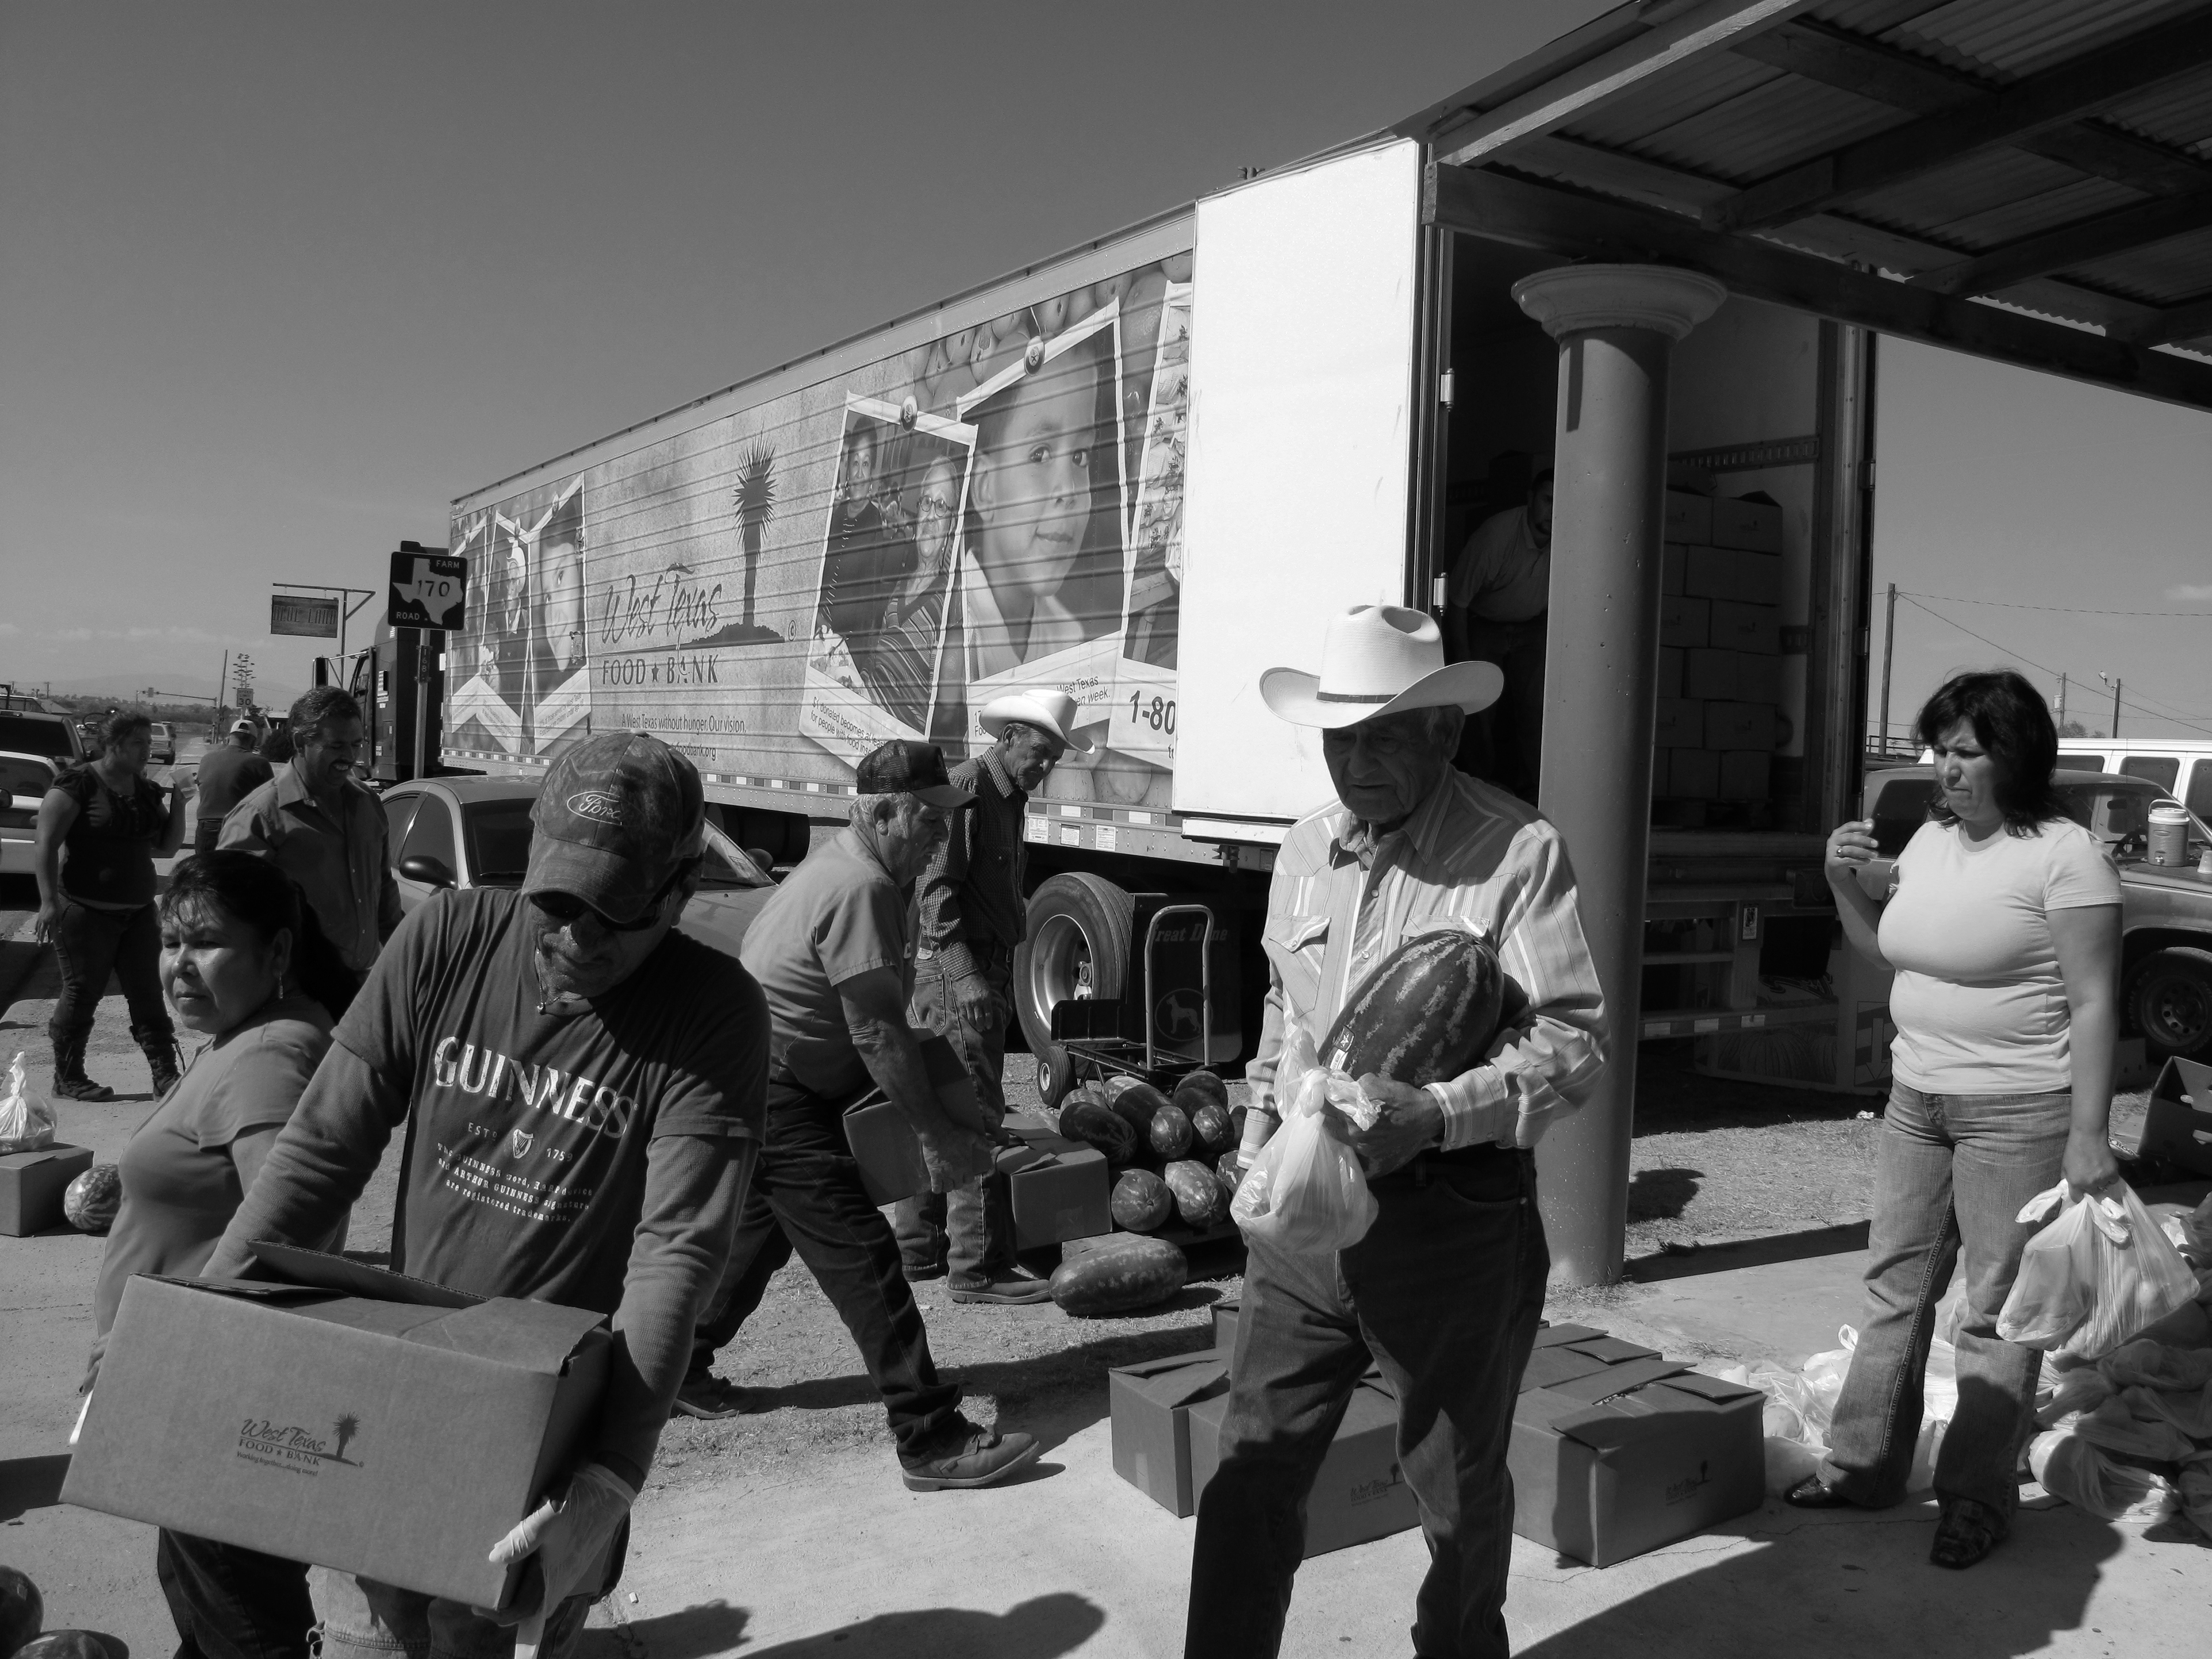 Men and women carry boxes and bags away from a tractor trailer truck